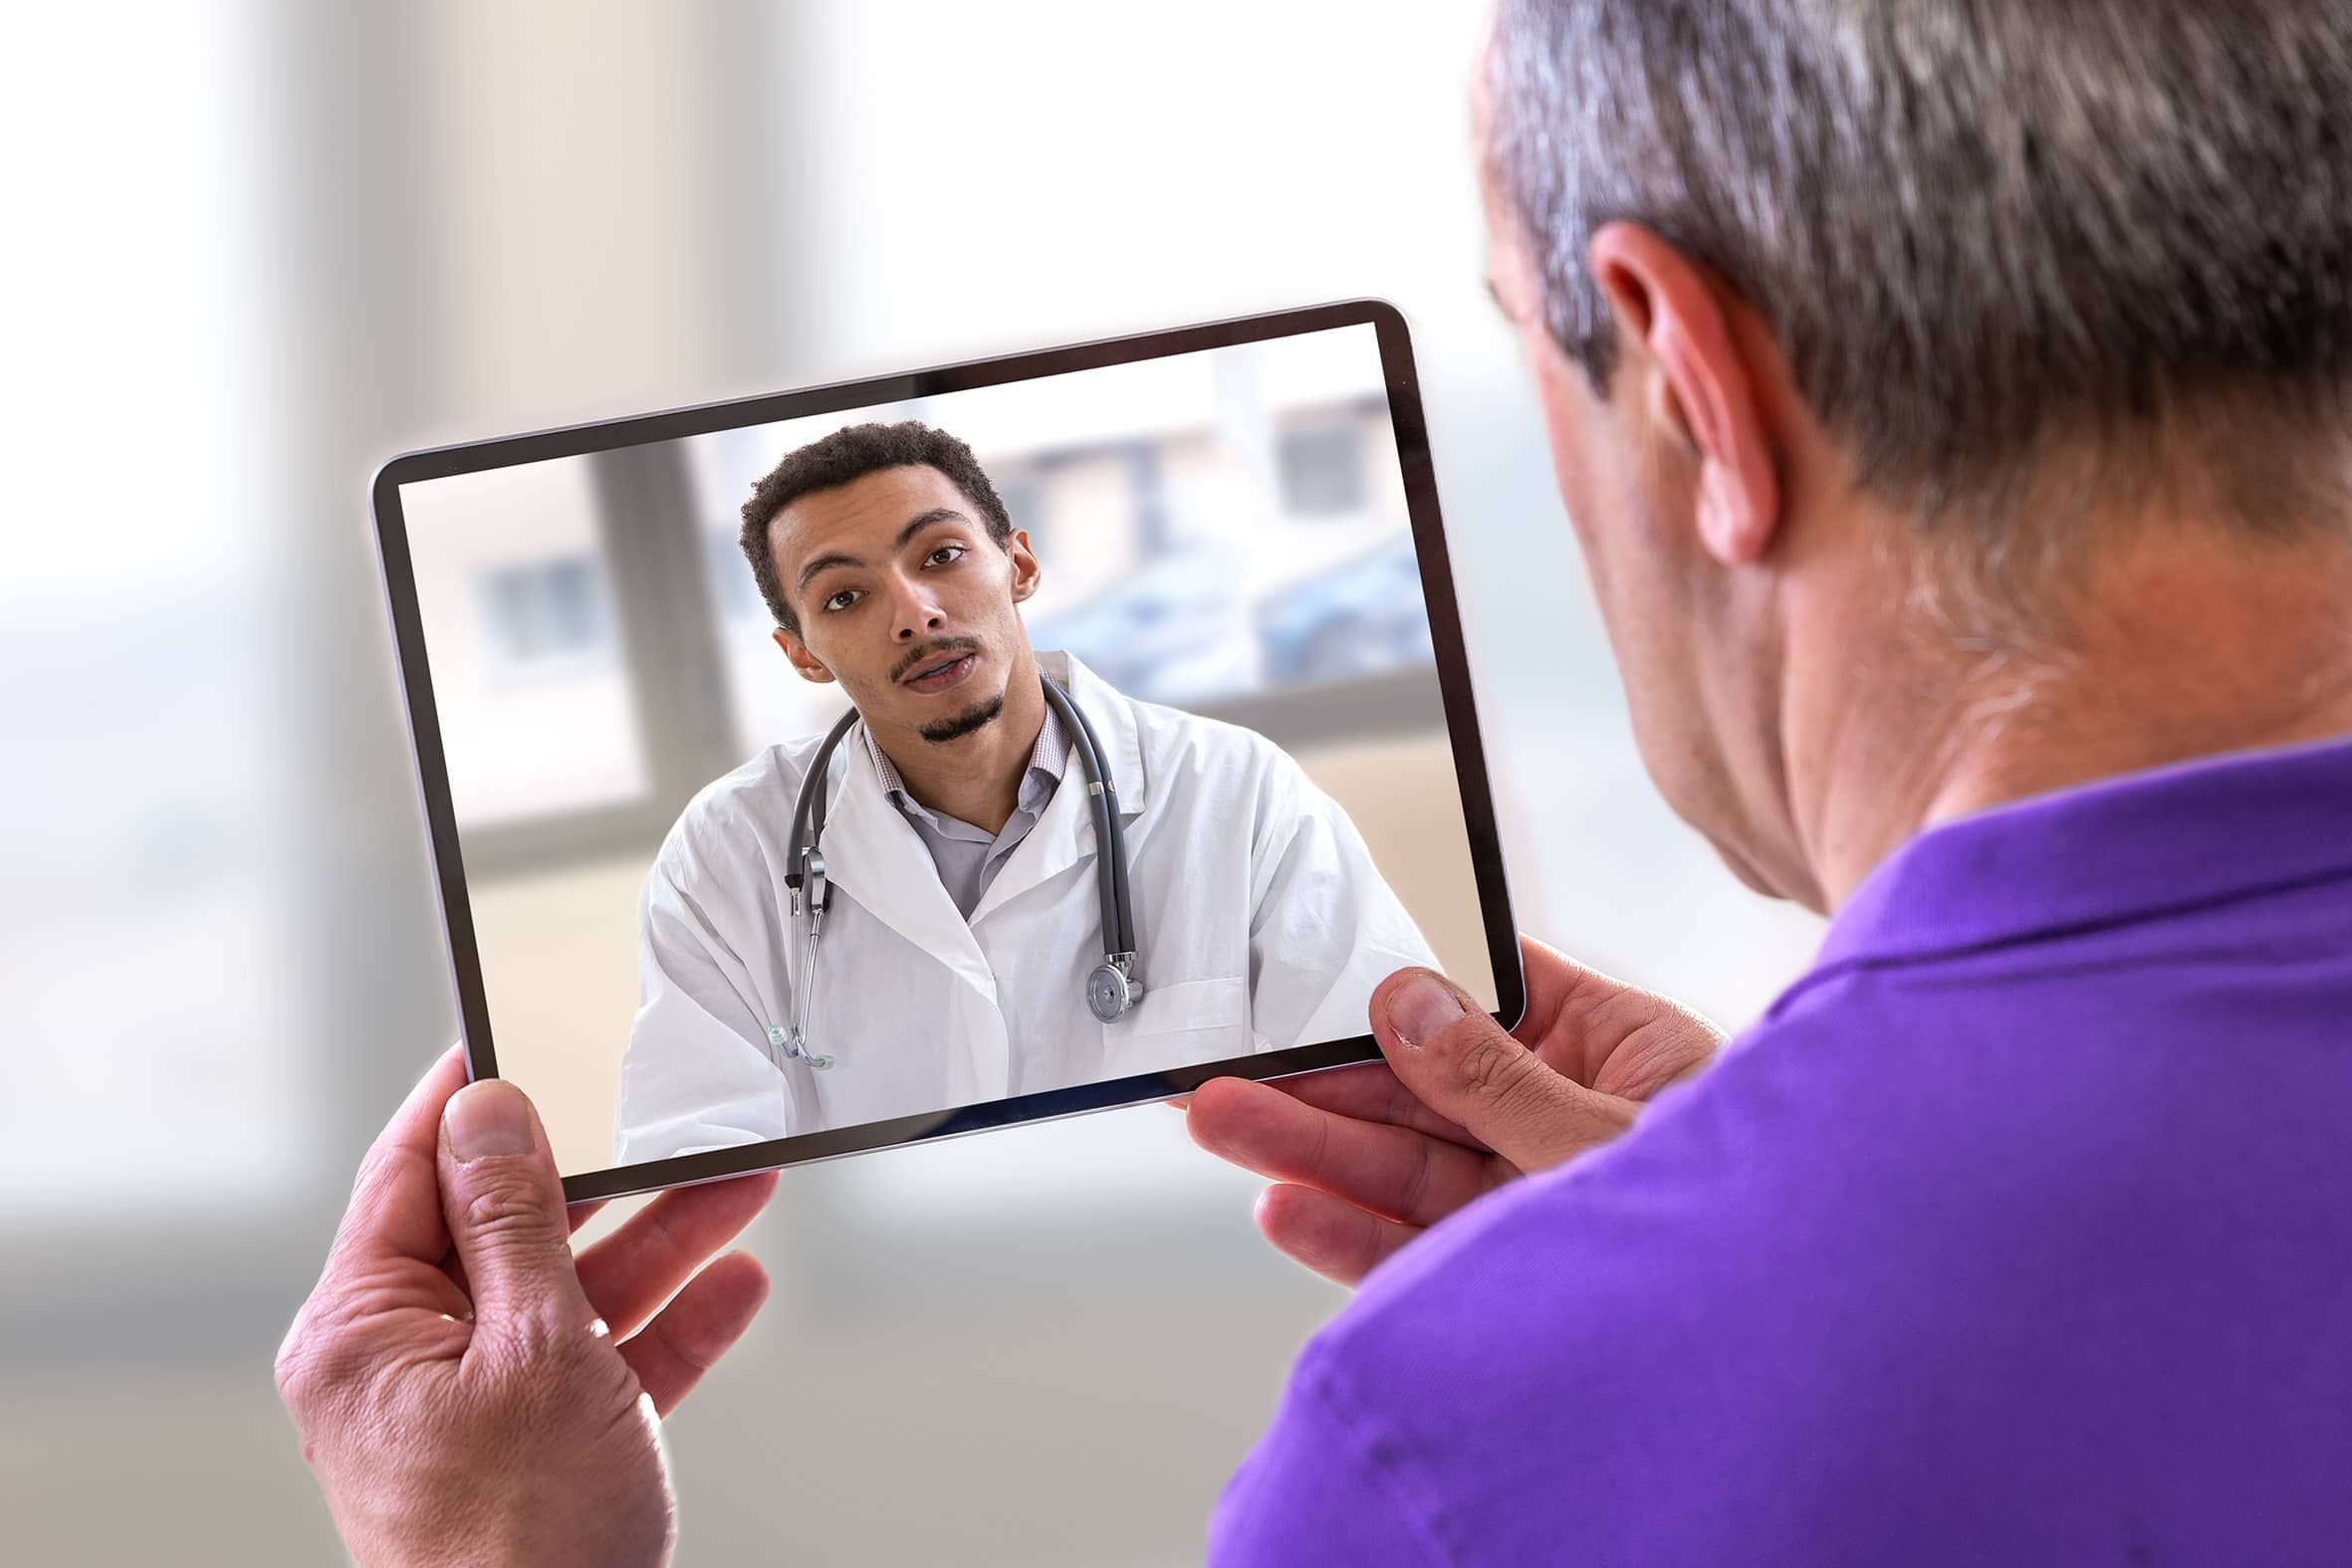 What Services Can Be Provided By Telemedicine?